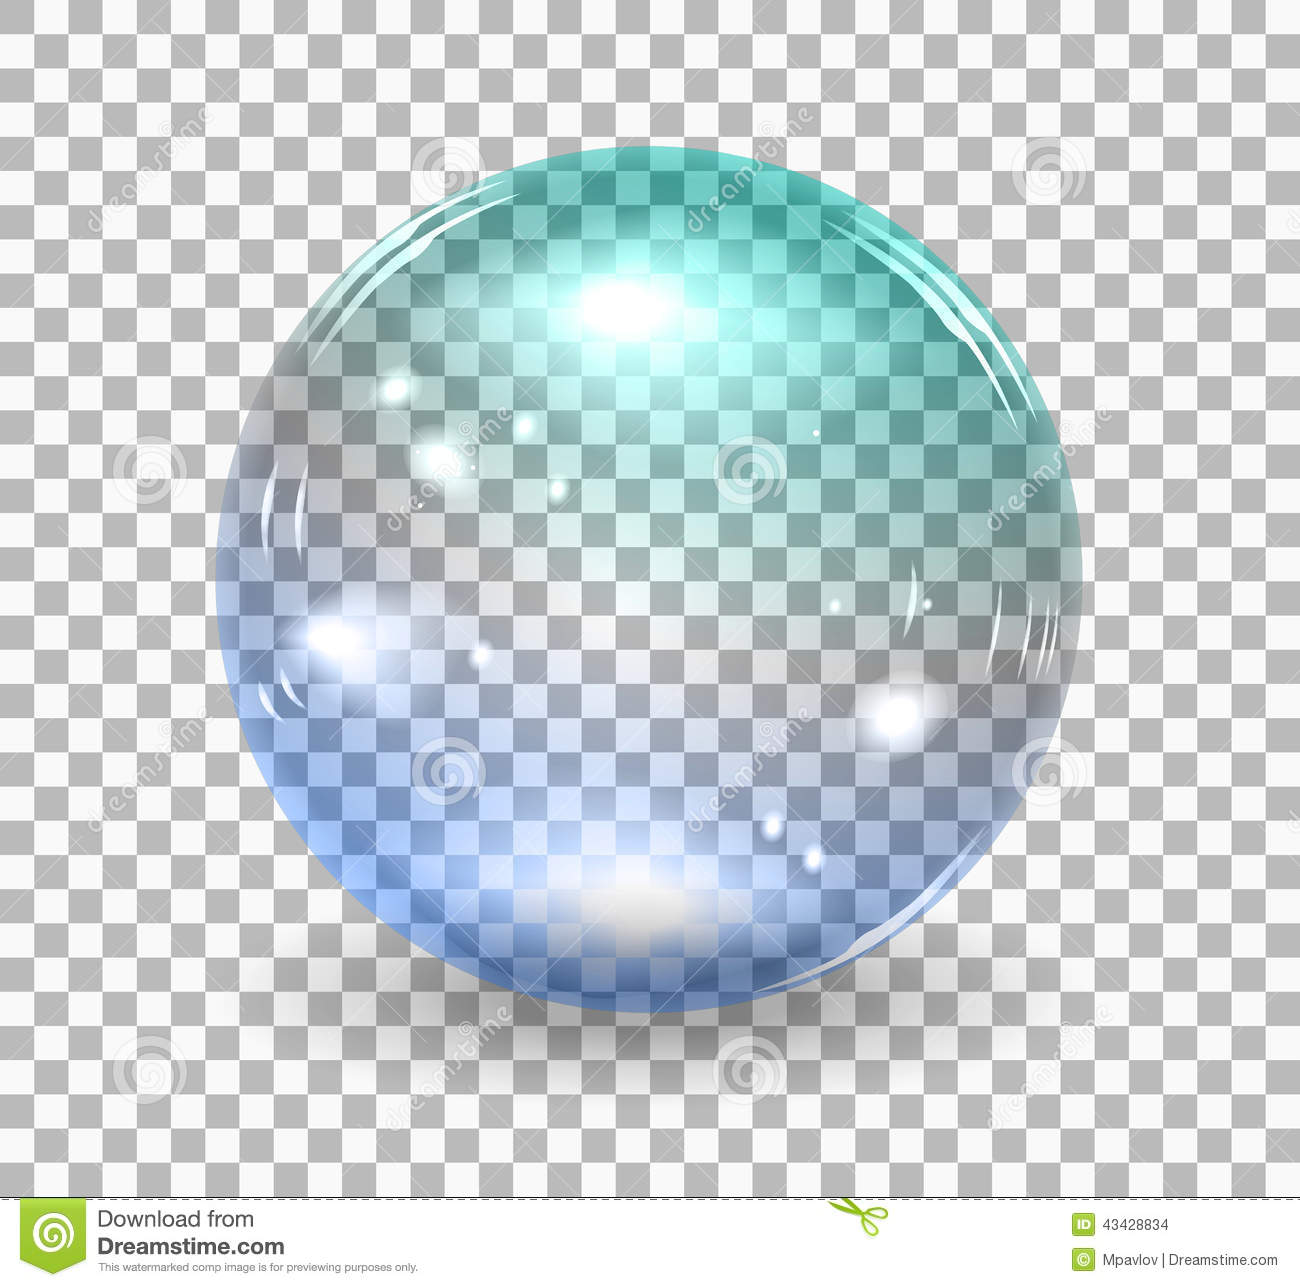 1300x1287 Collection Of Bubble Clipart Transparent Background High